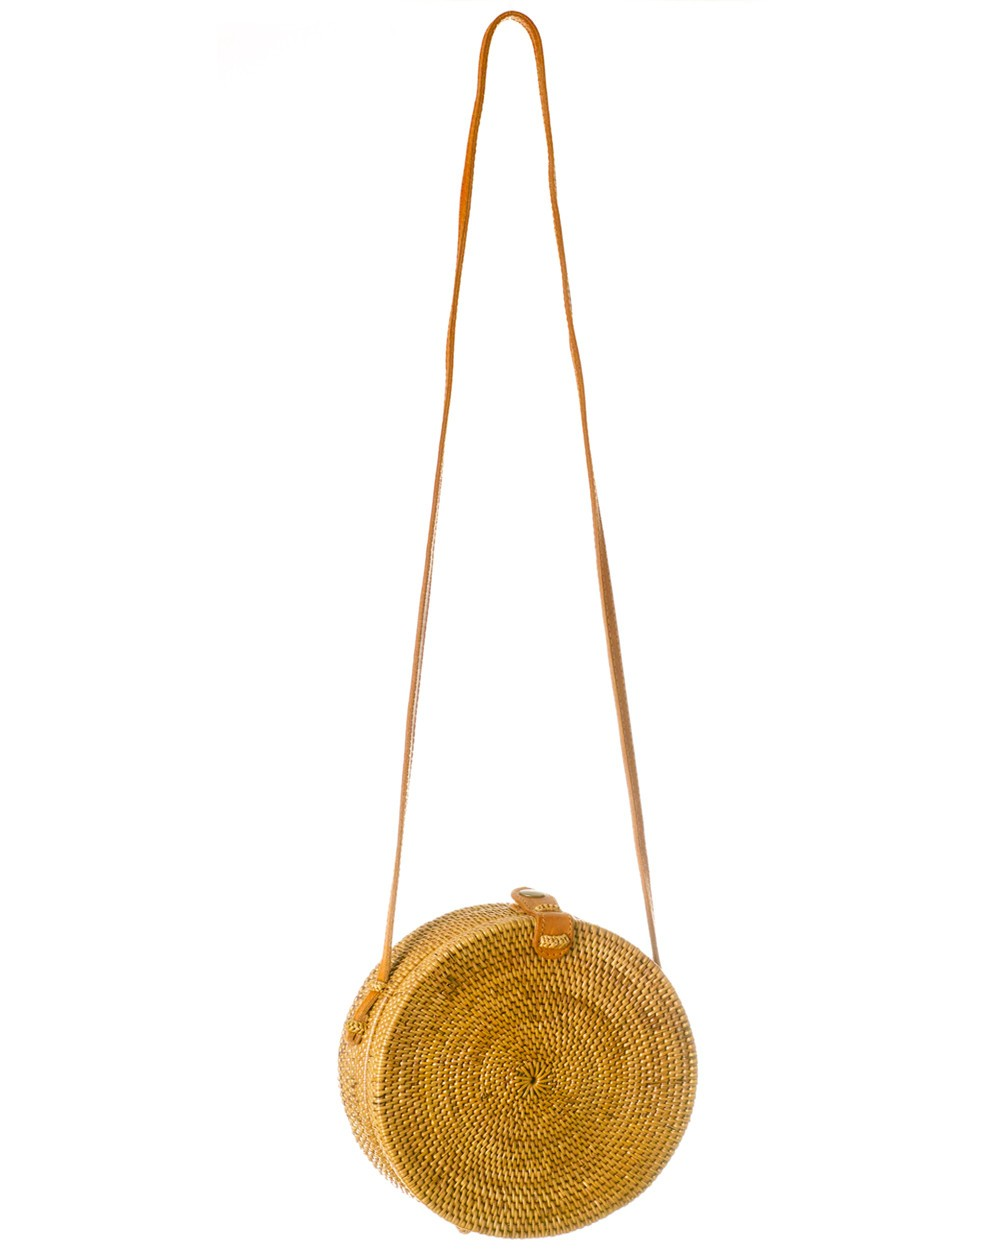 ROUND WICKER BAG from BALI